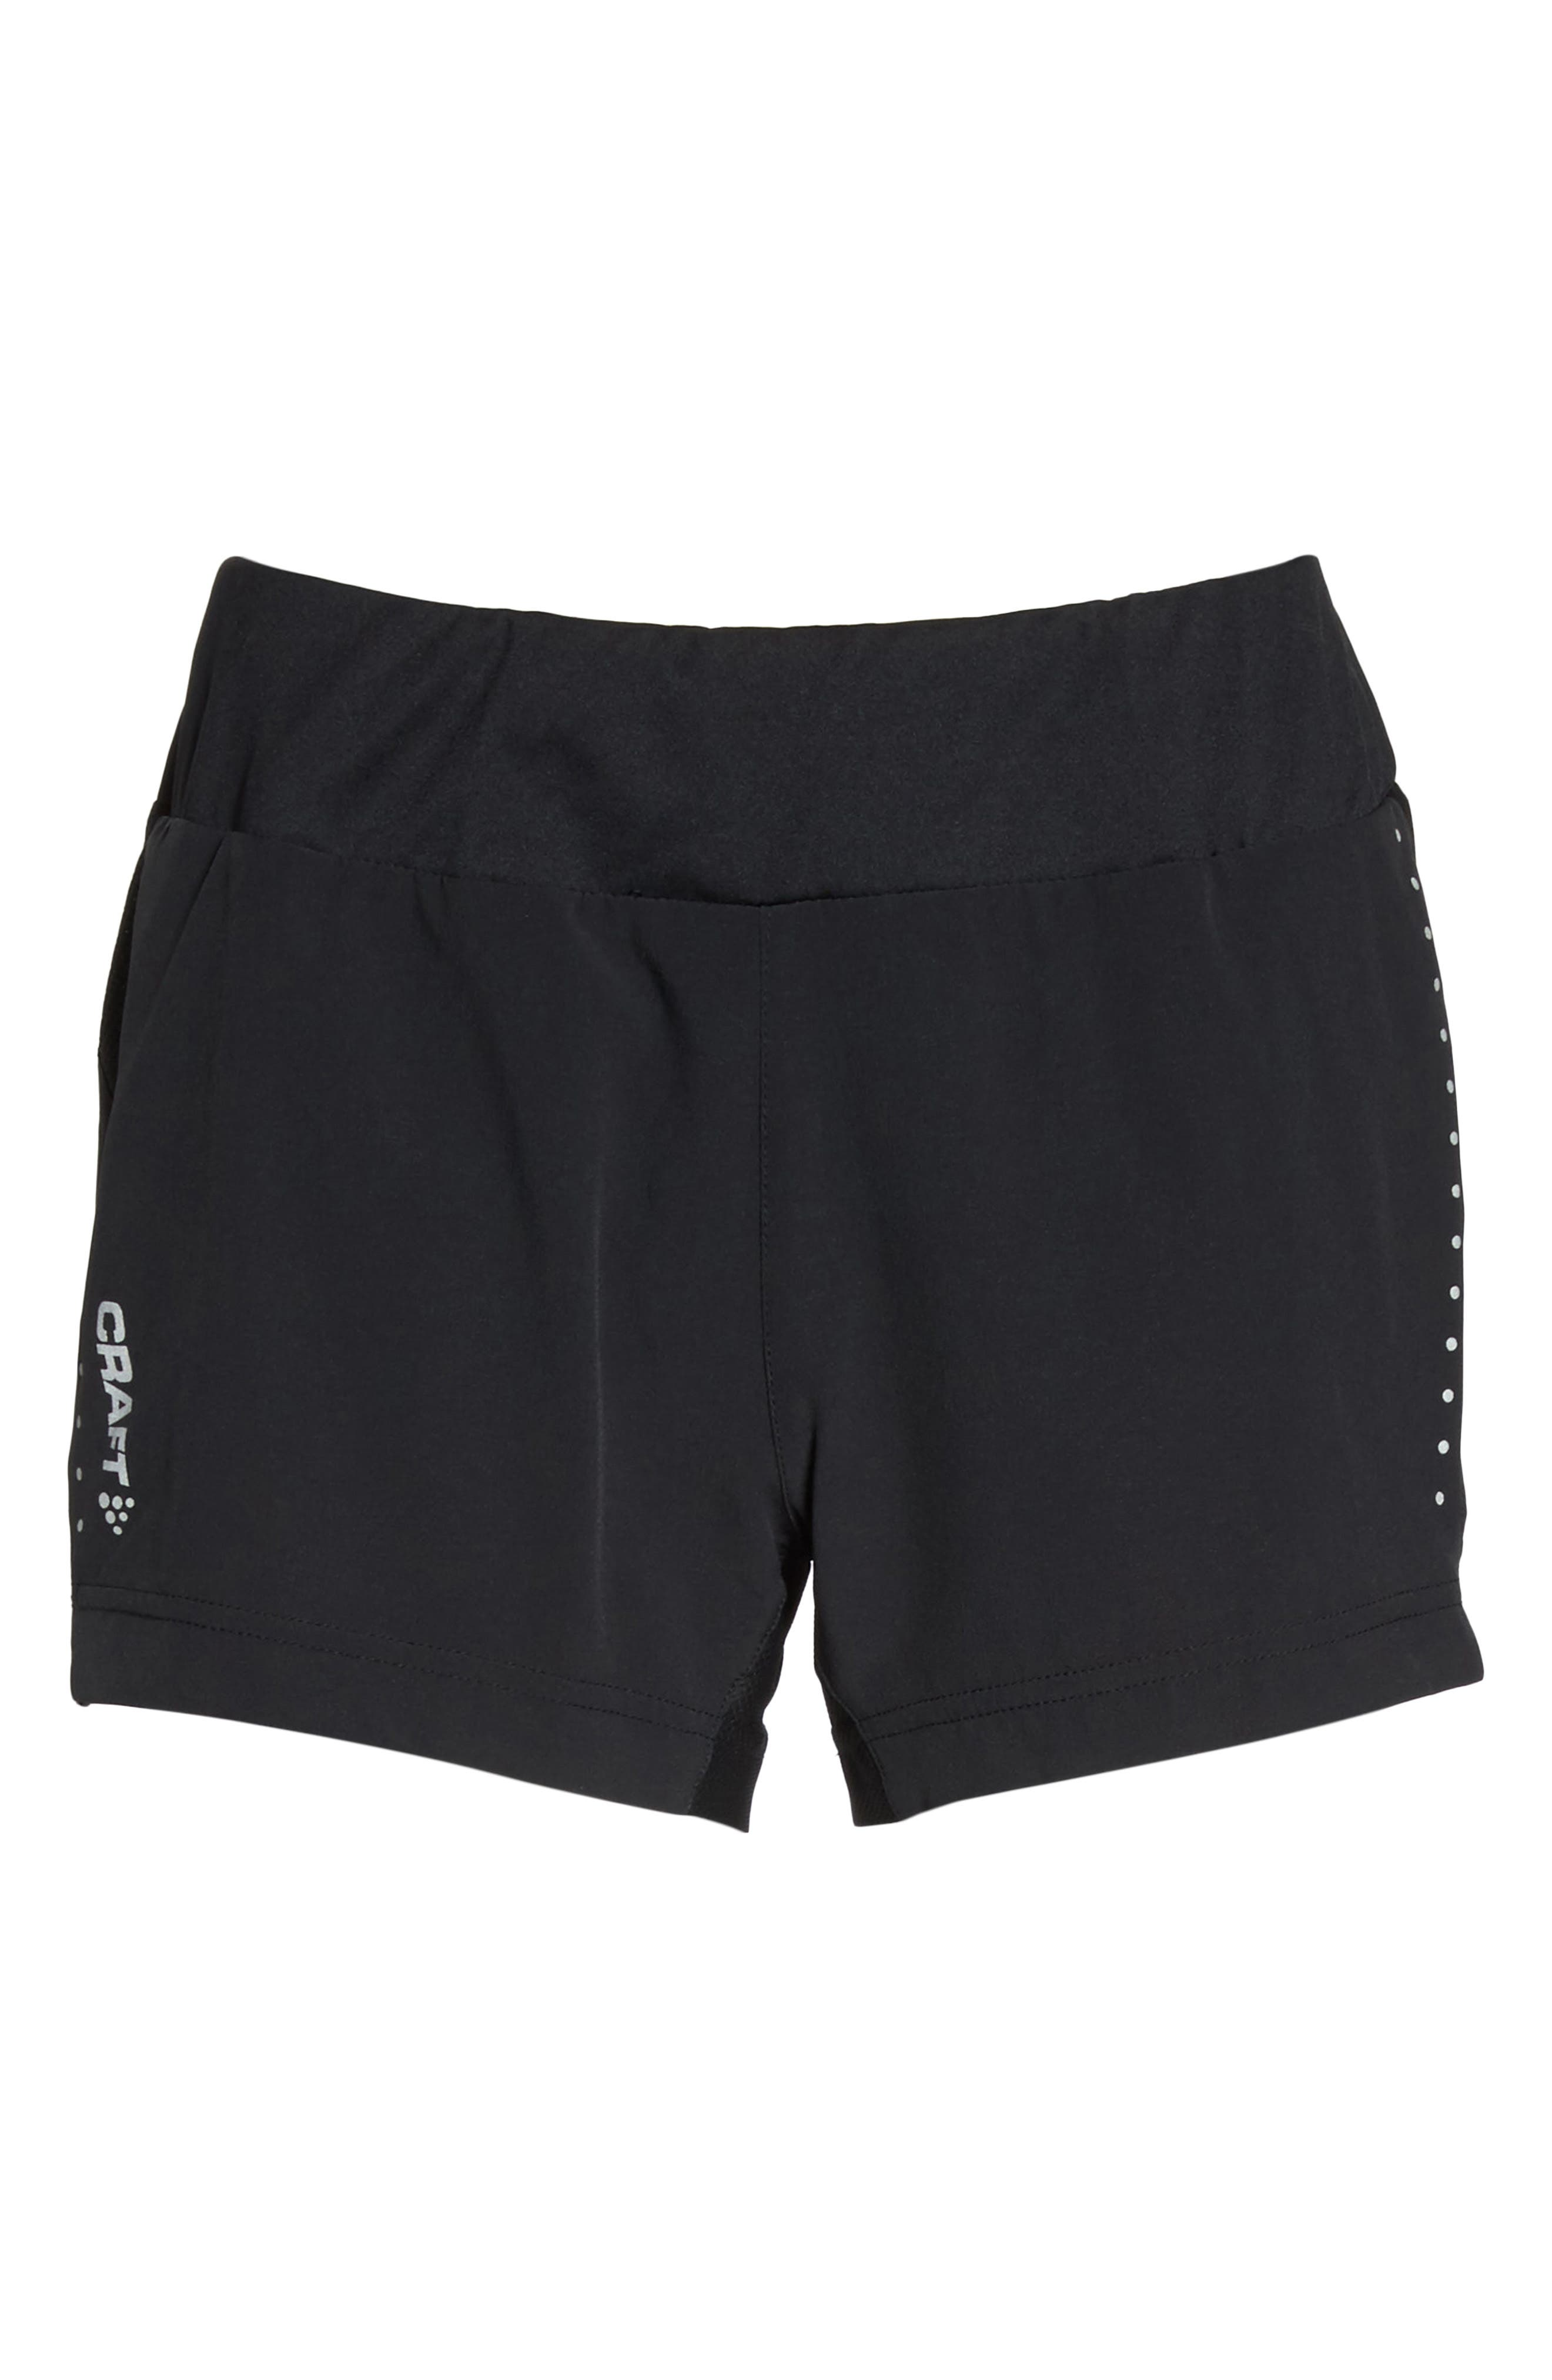 Essential Running Shorts,                             Alternate thumbnail 7, color,